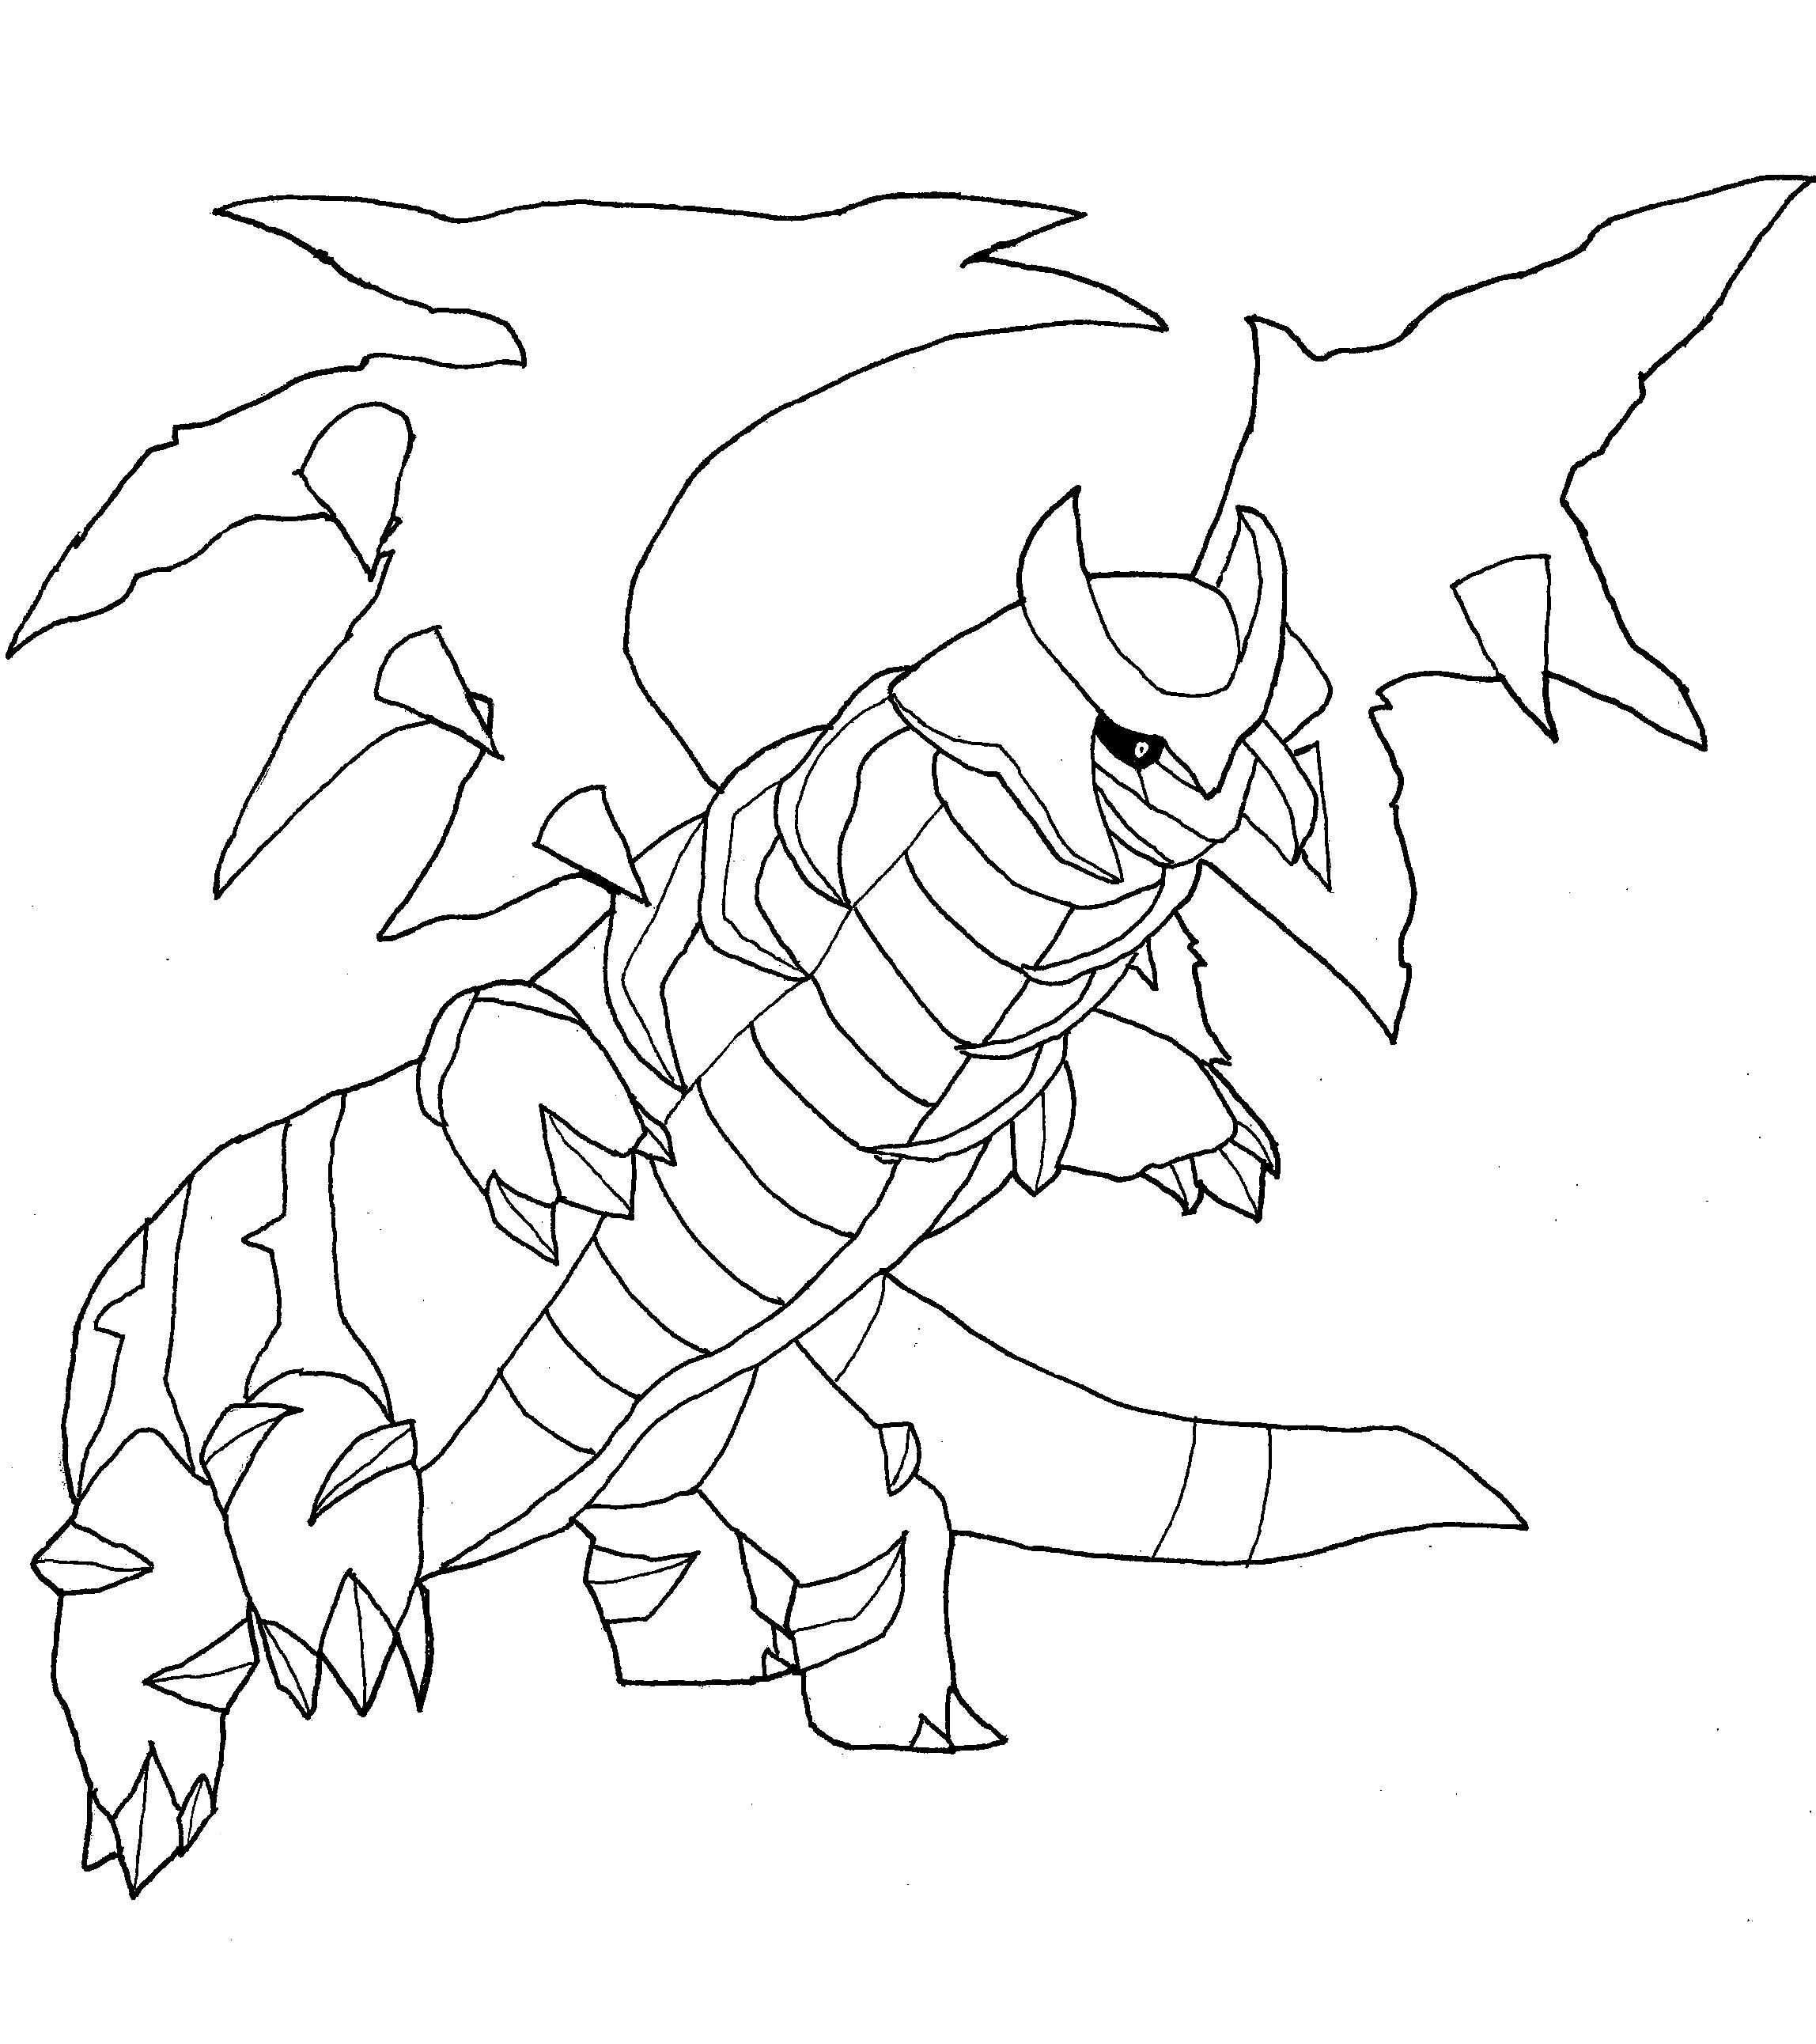 giratina coloring pages - kleurplaat giratina pokemonkleurplaten